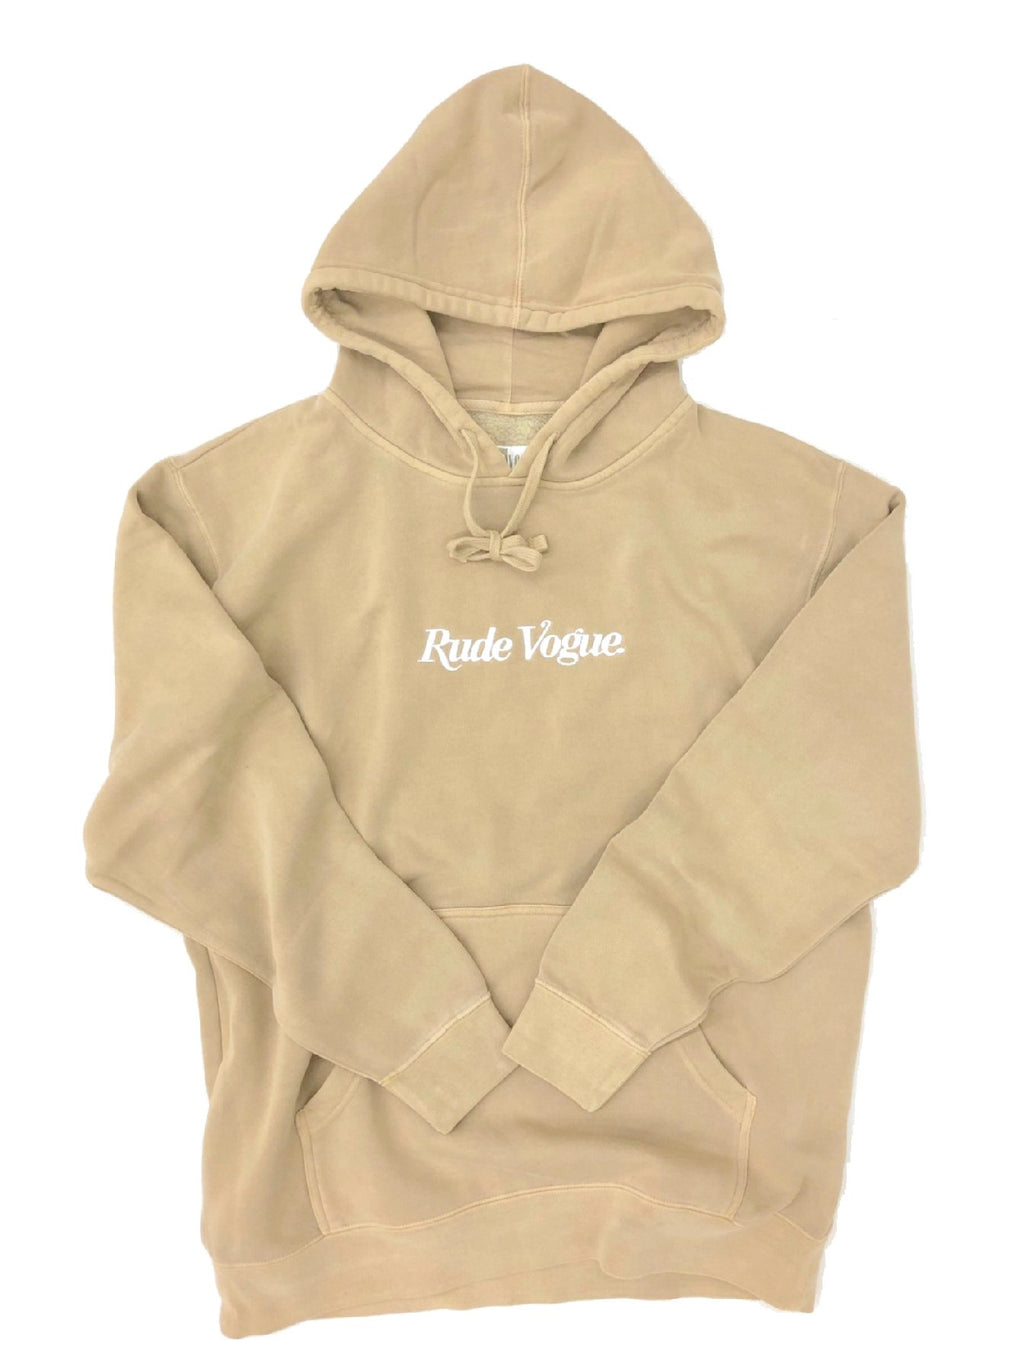 RUDE VOGUE HOODIE - WASHED SAND